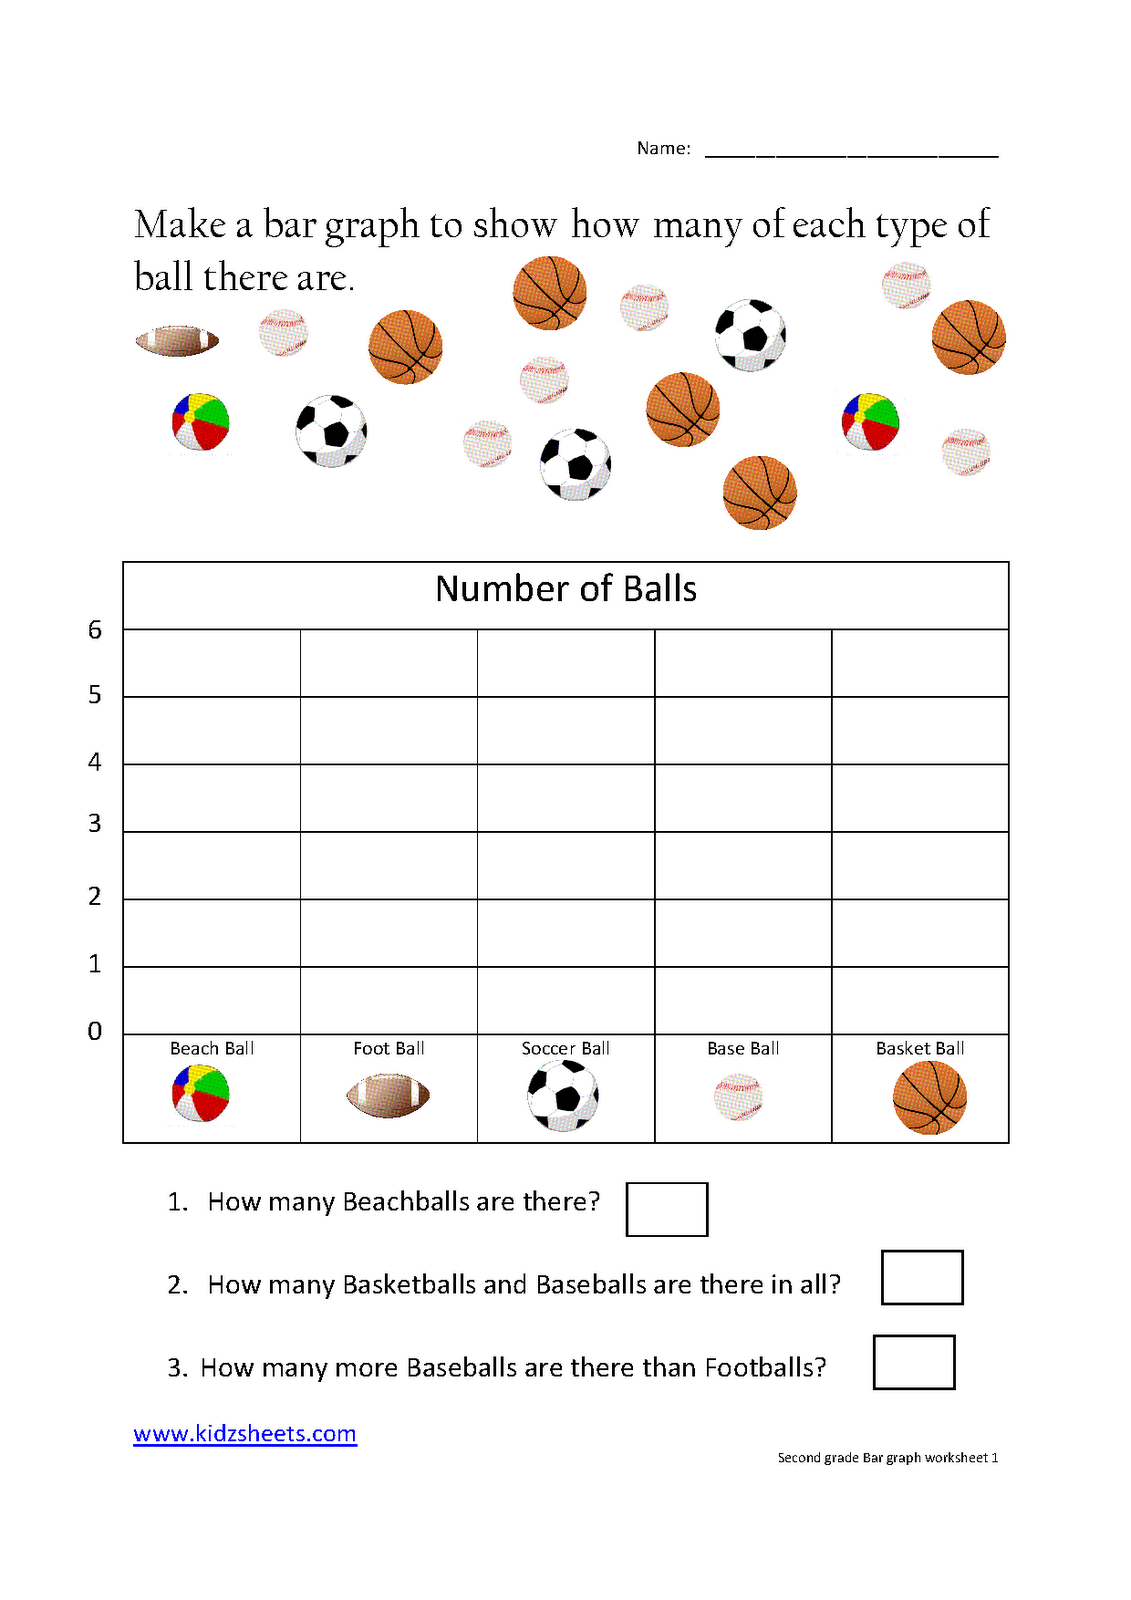 Free printable bar graph worksheets 1st grade